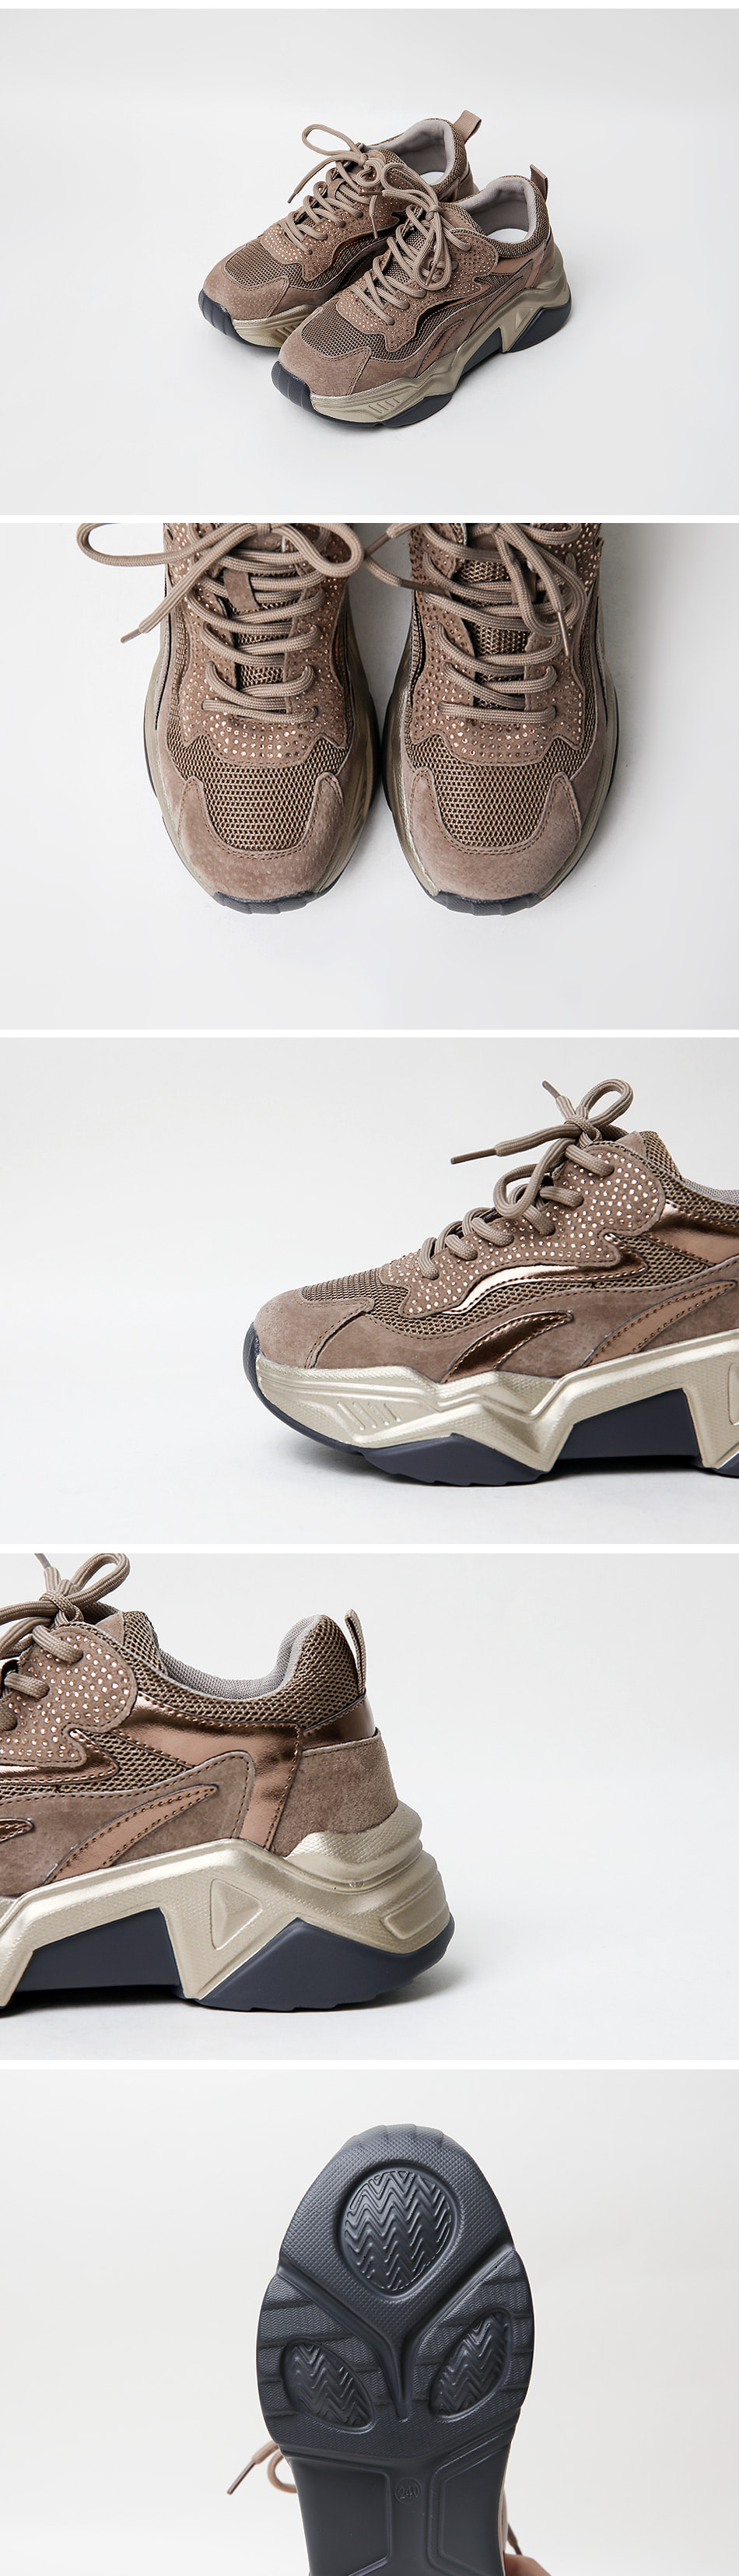 Kennants Leather Ugly Sneaker 5cm